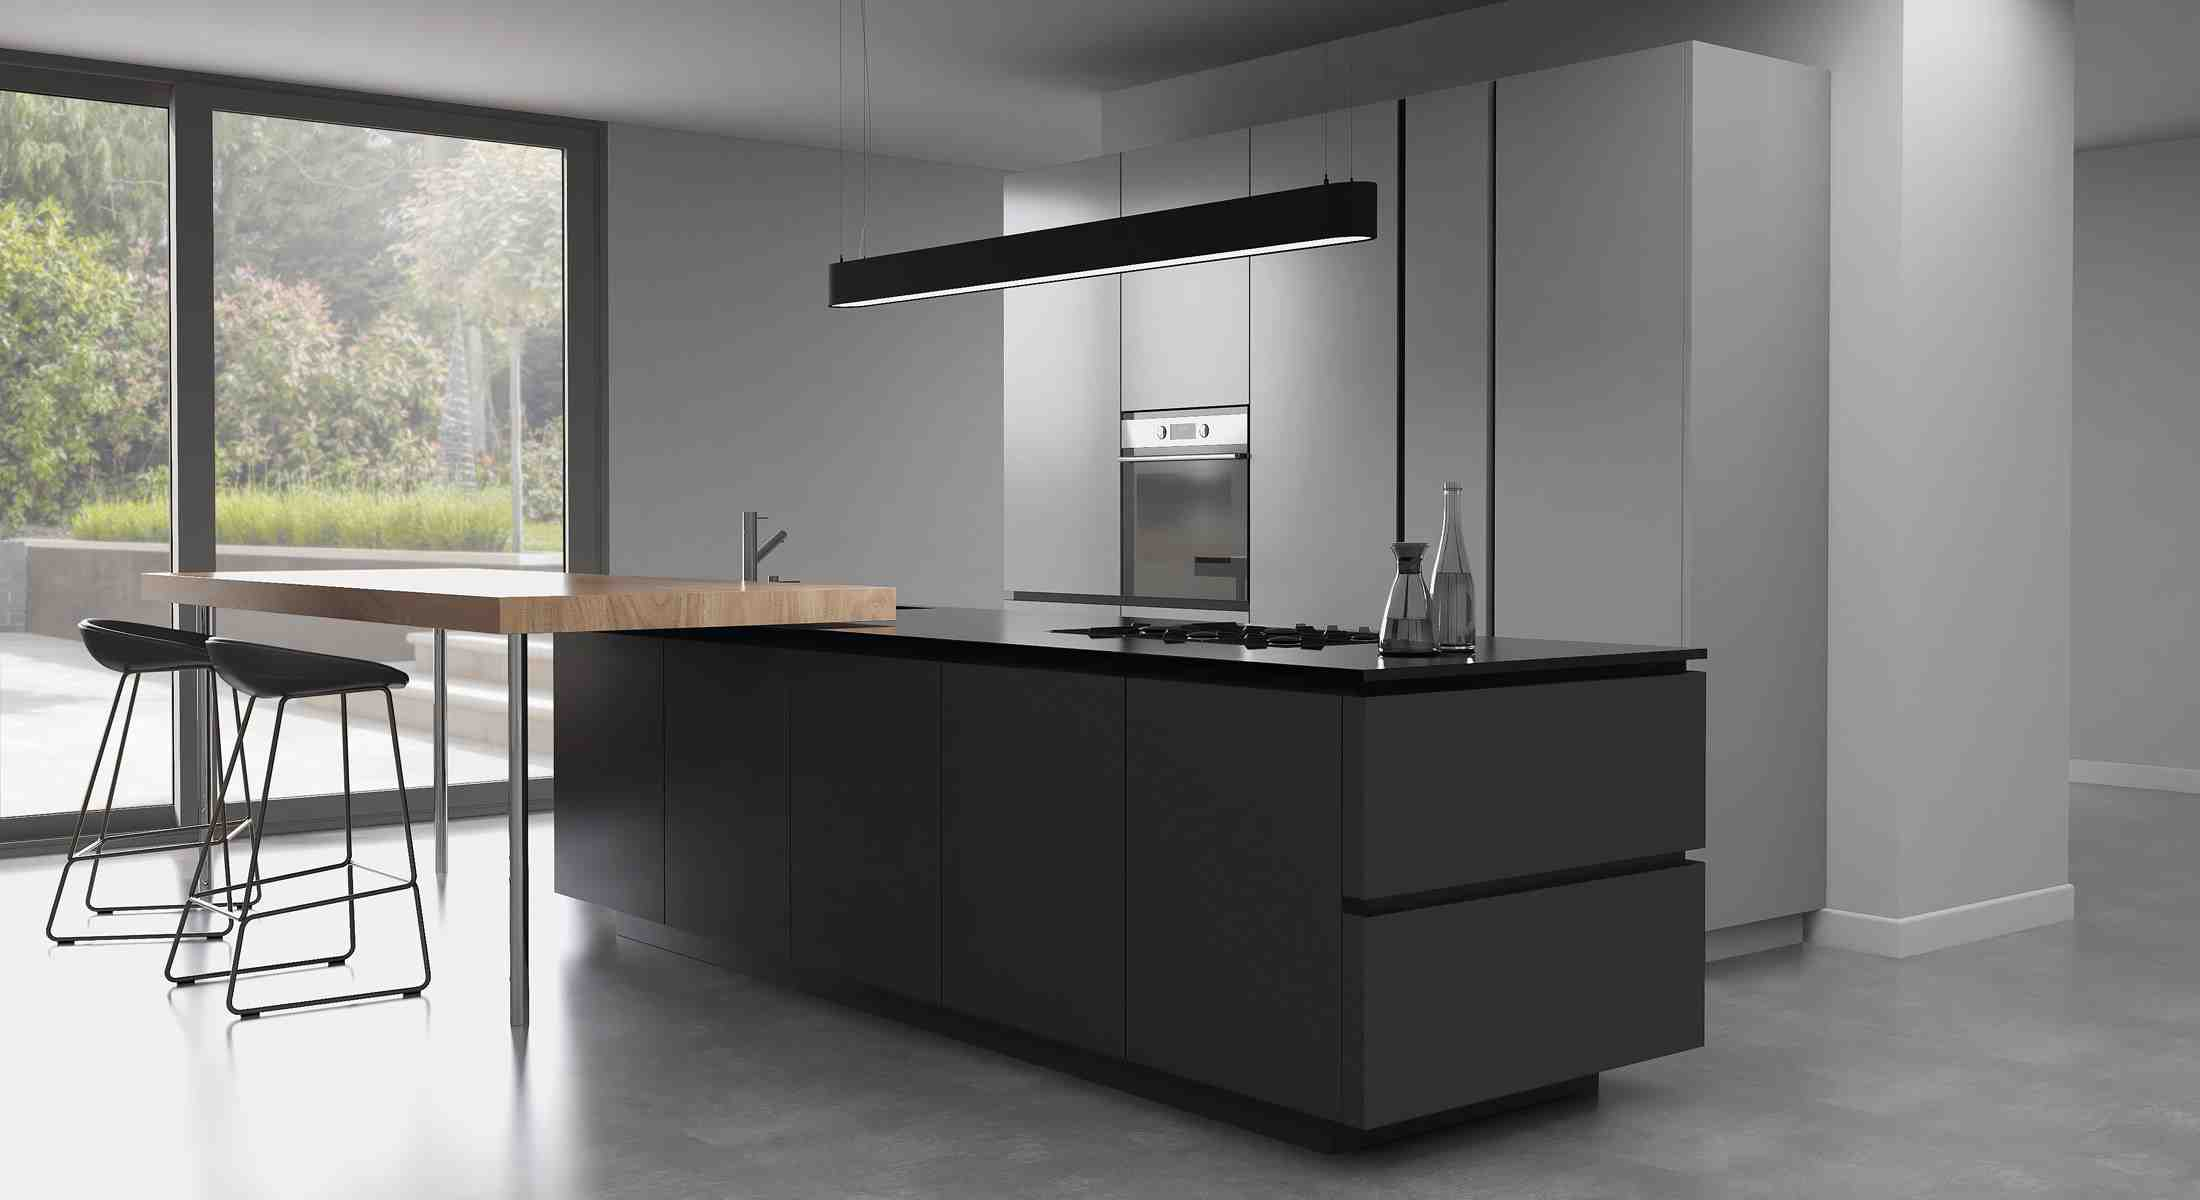 kitchens in burryport, wales by steve williams - tribeca - true handleless